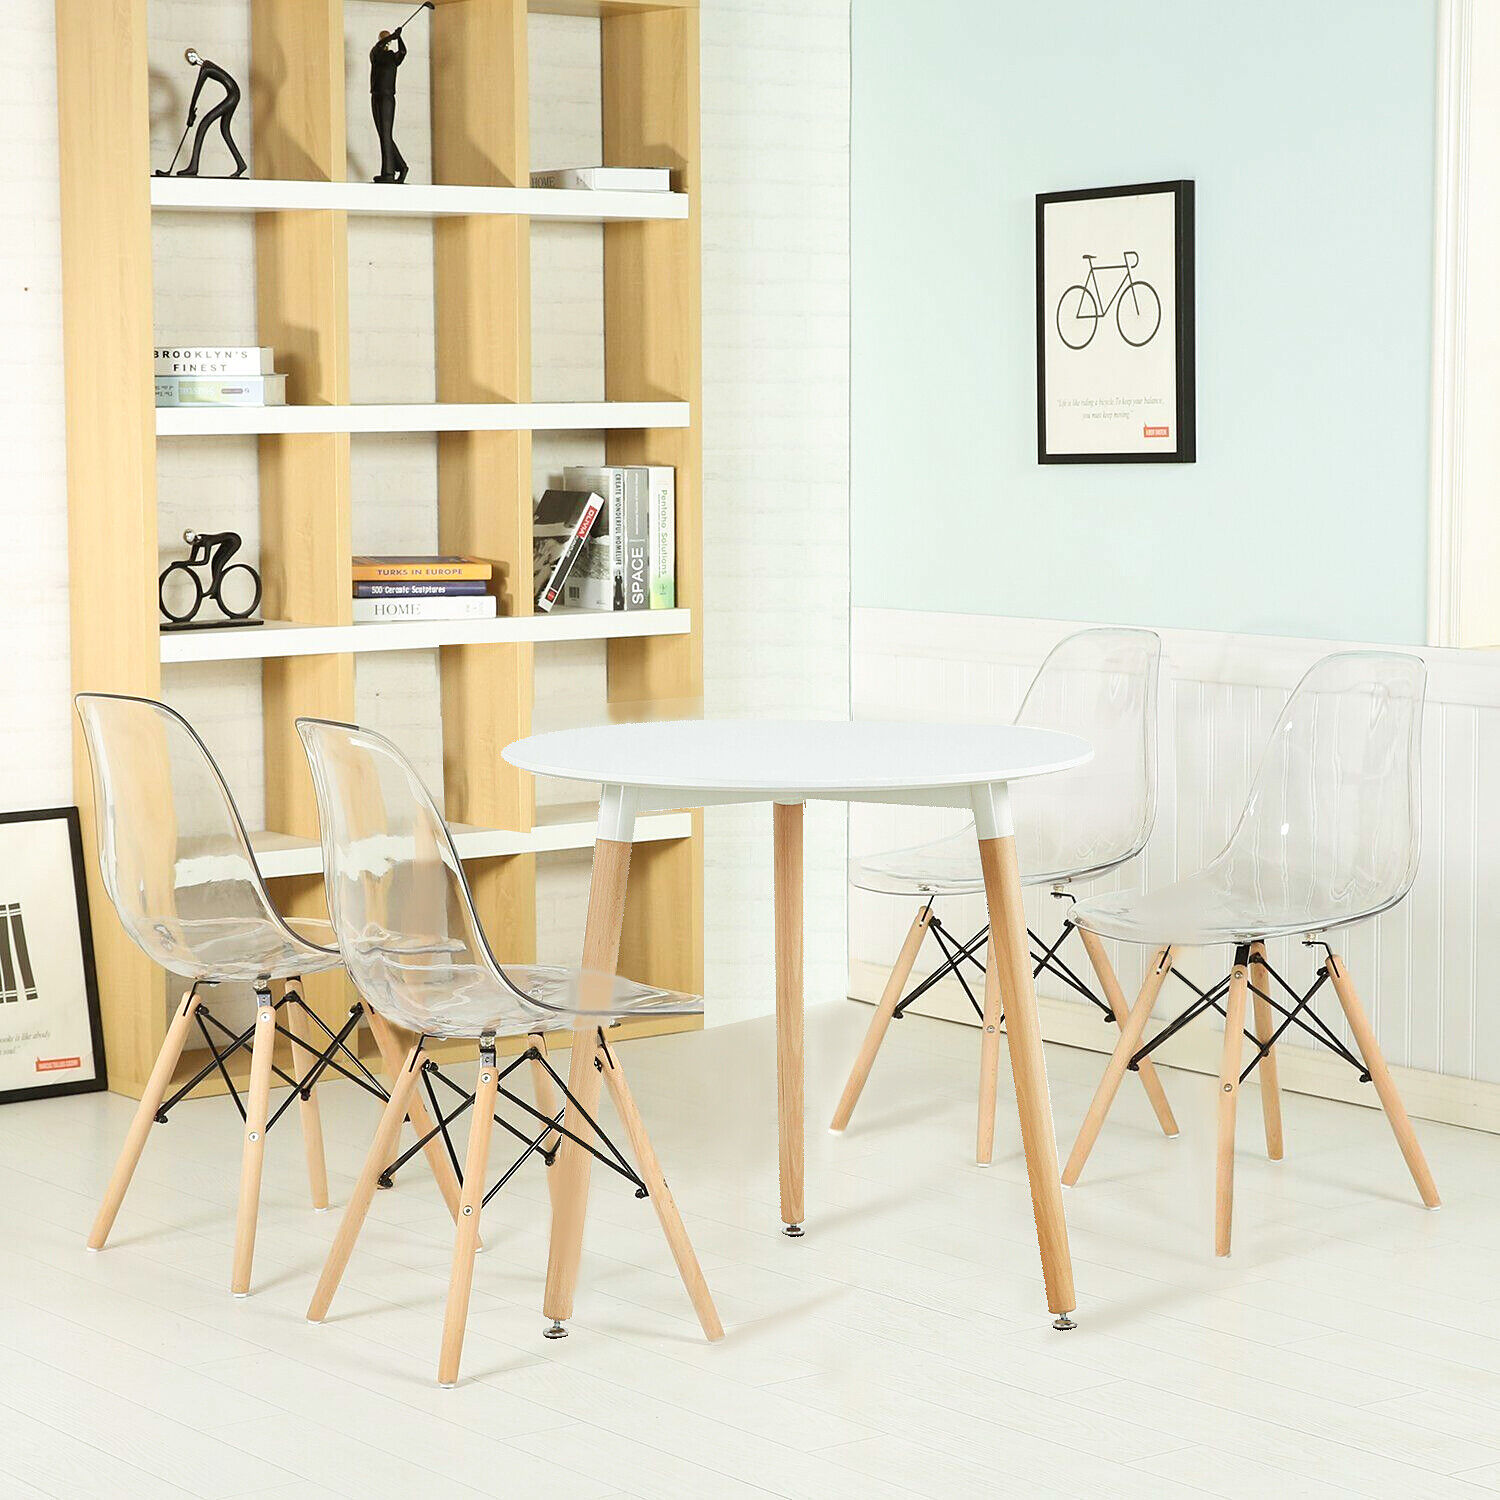 Details About Eggree 80cm Round Wood Dining Table And 4 Chairs Set In Transpa Chair